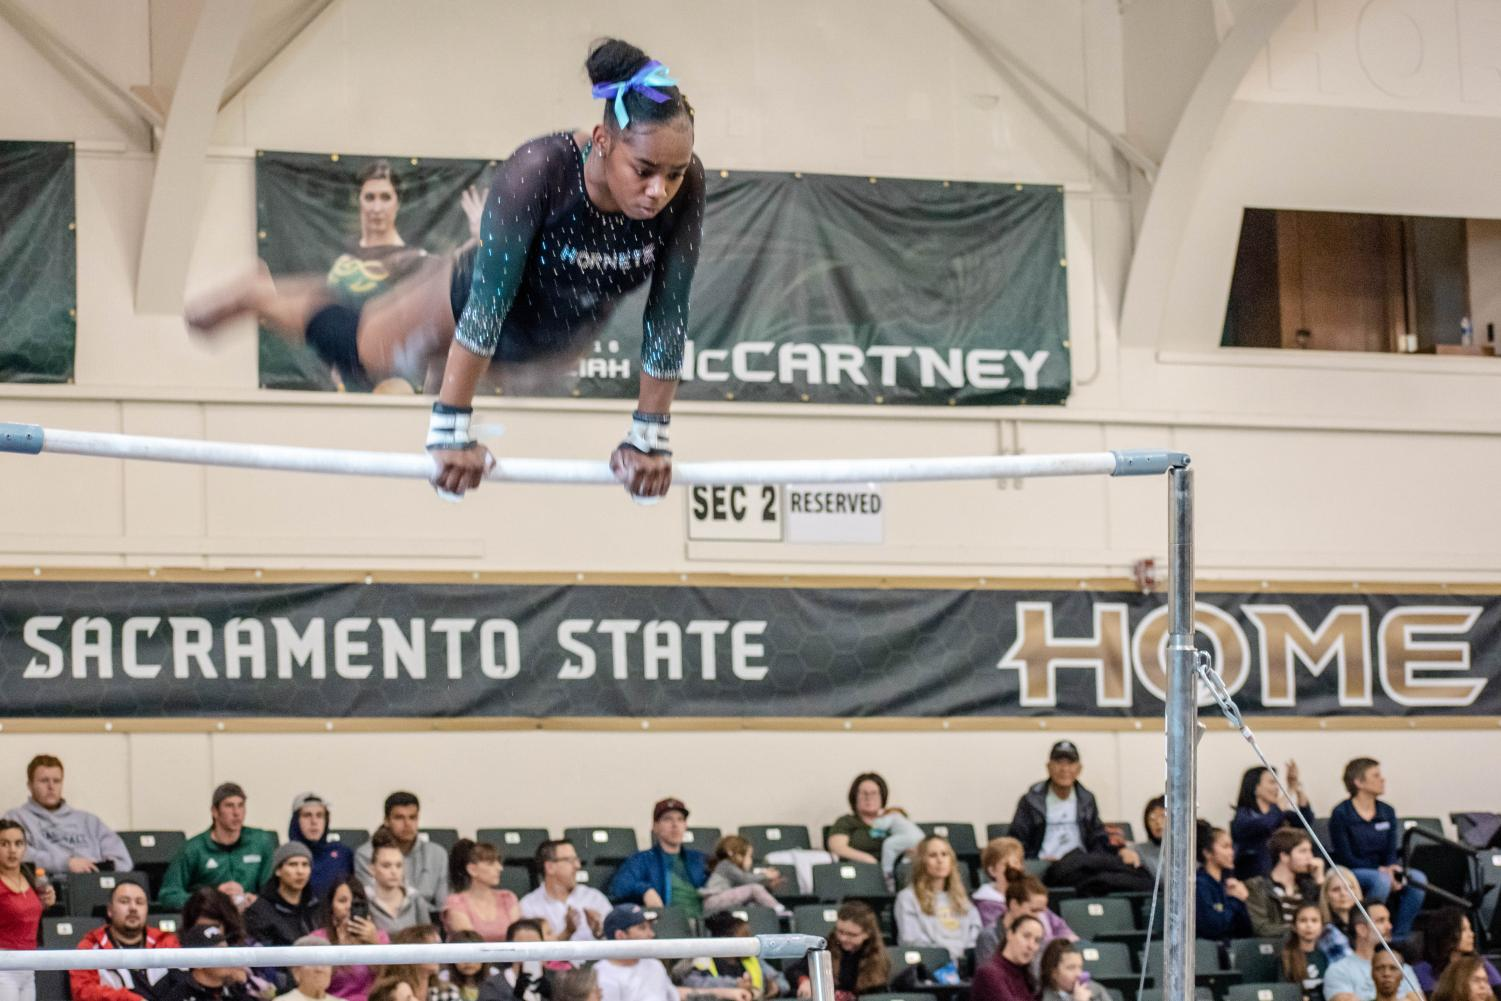 Sac+State+gymnast+freshman+Destiny+Watley+records+a+9.550+on+the+uneven+bars.+The+Hornets+scored+46.850+in+the+event.